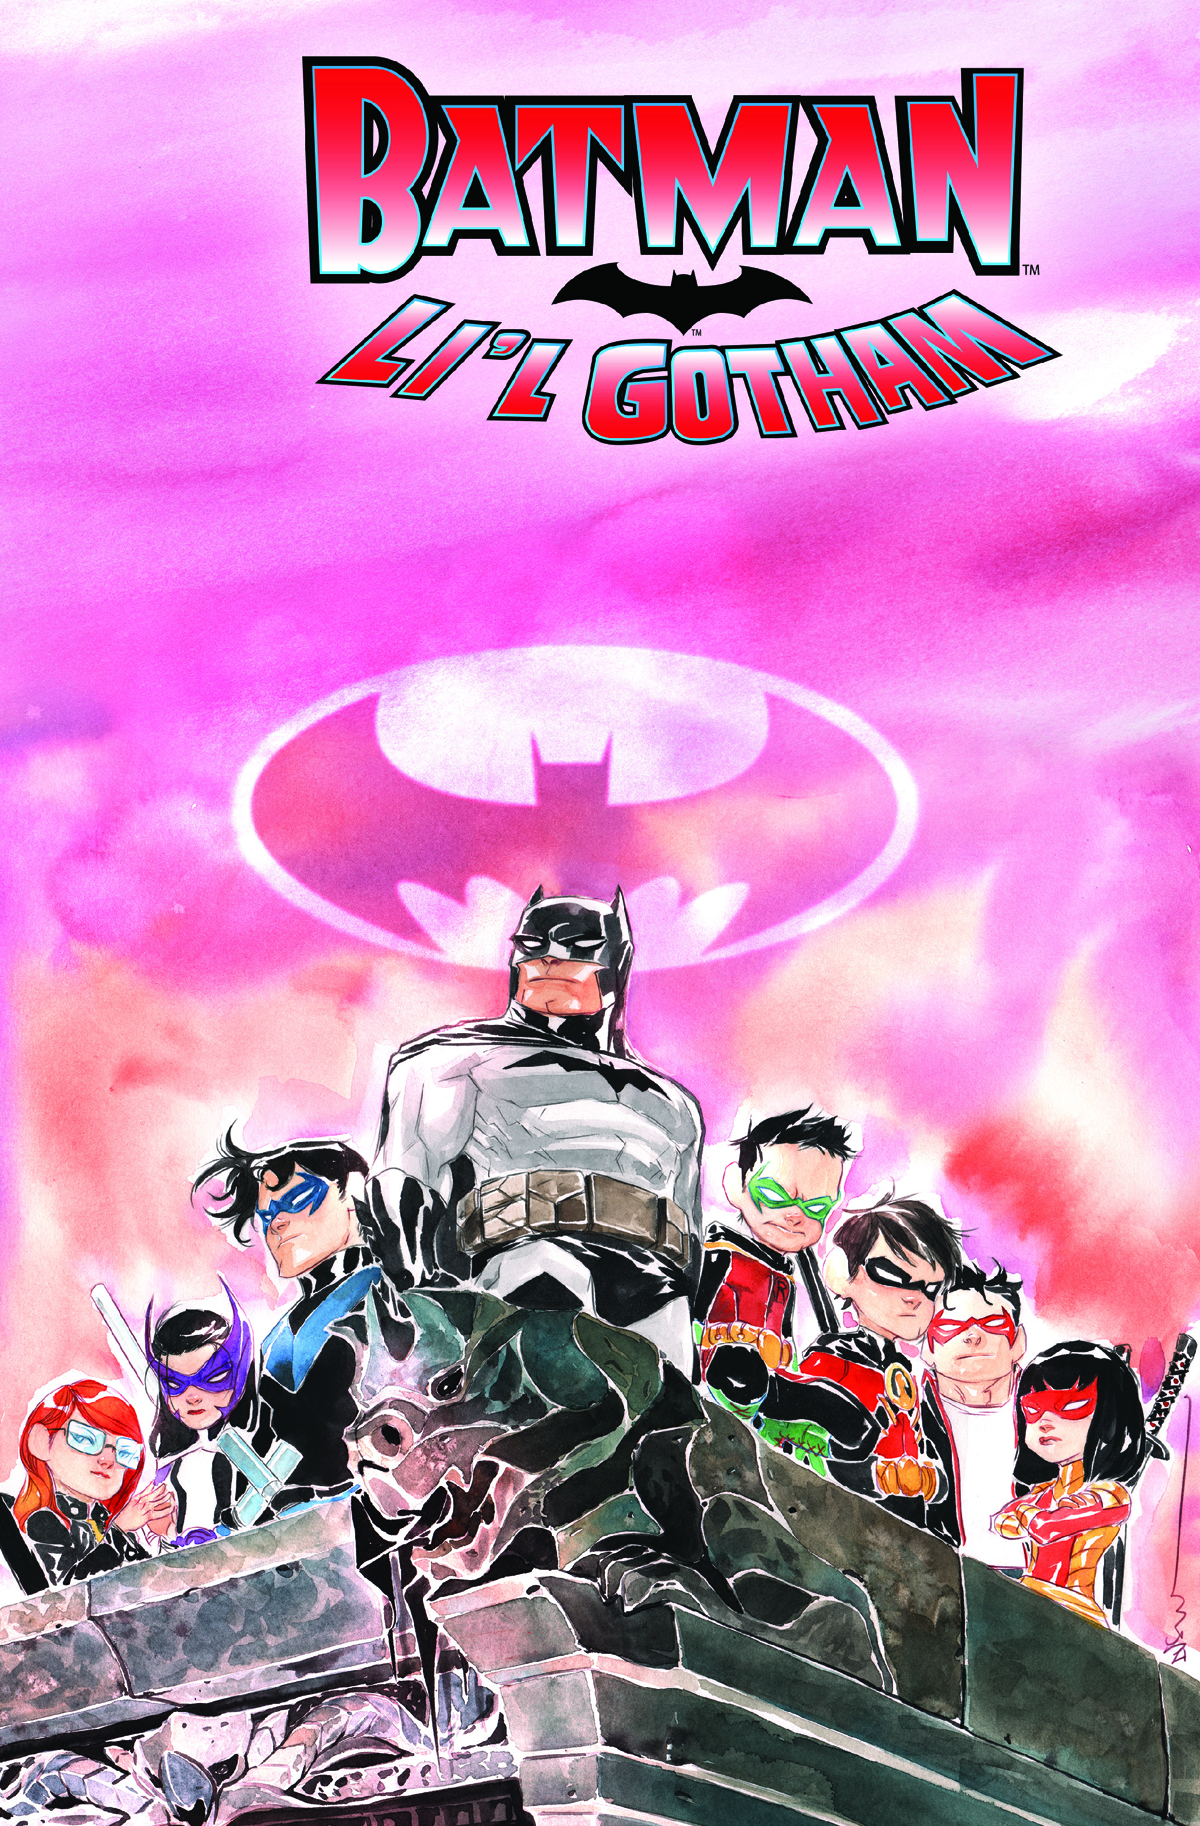 BATMAN LIL GOTHAM TP VOL 02